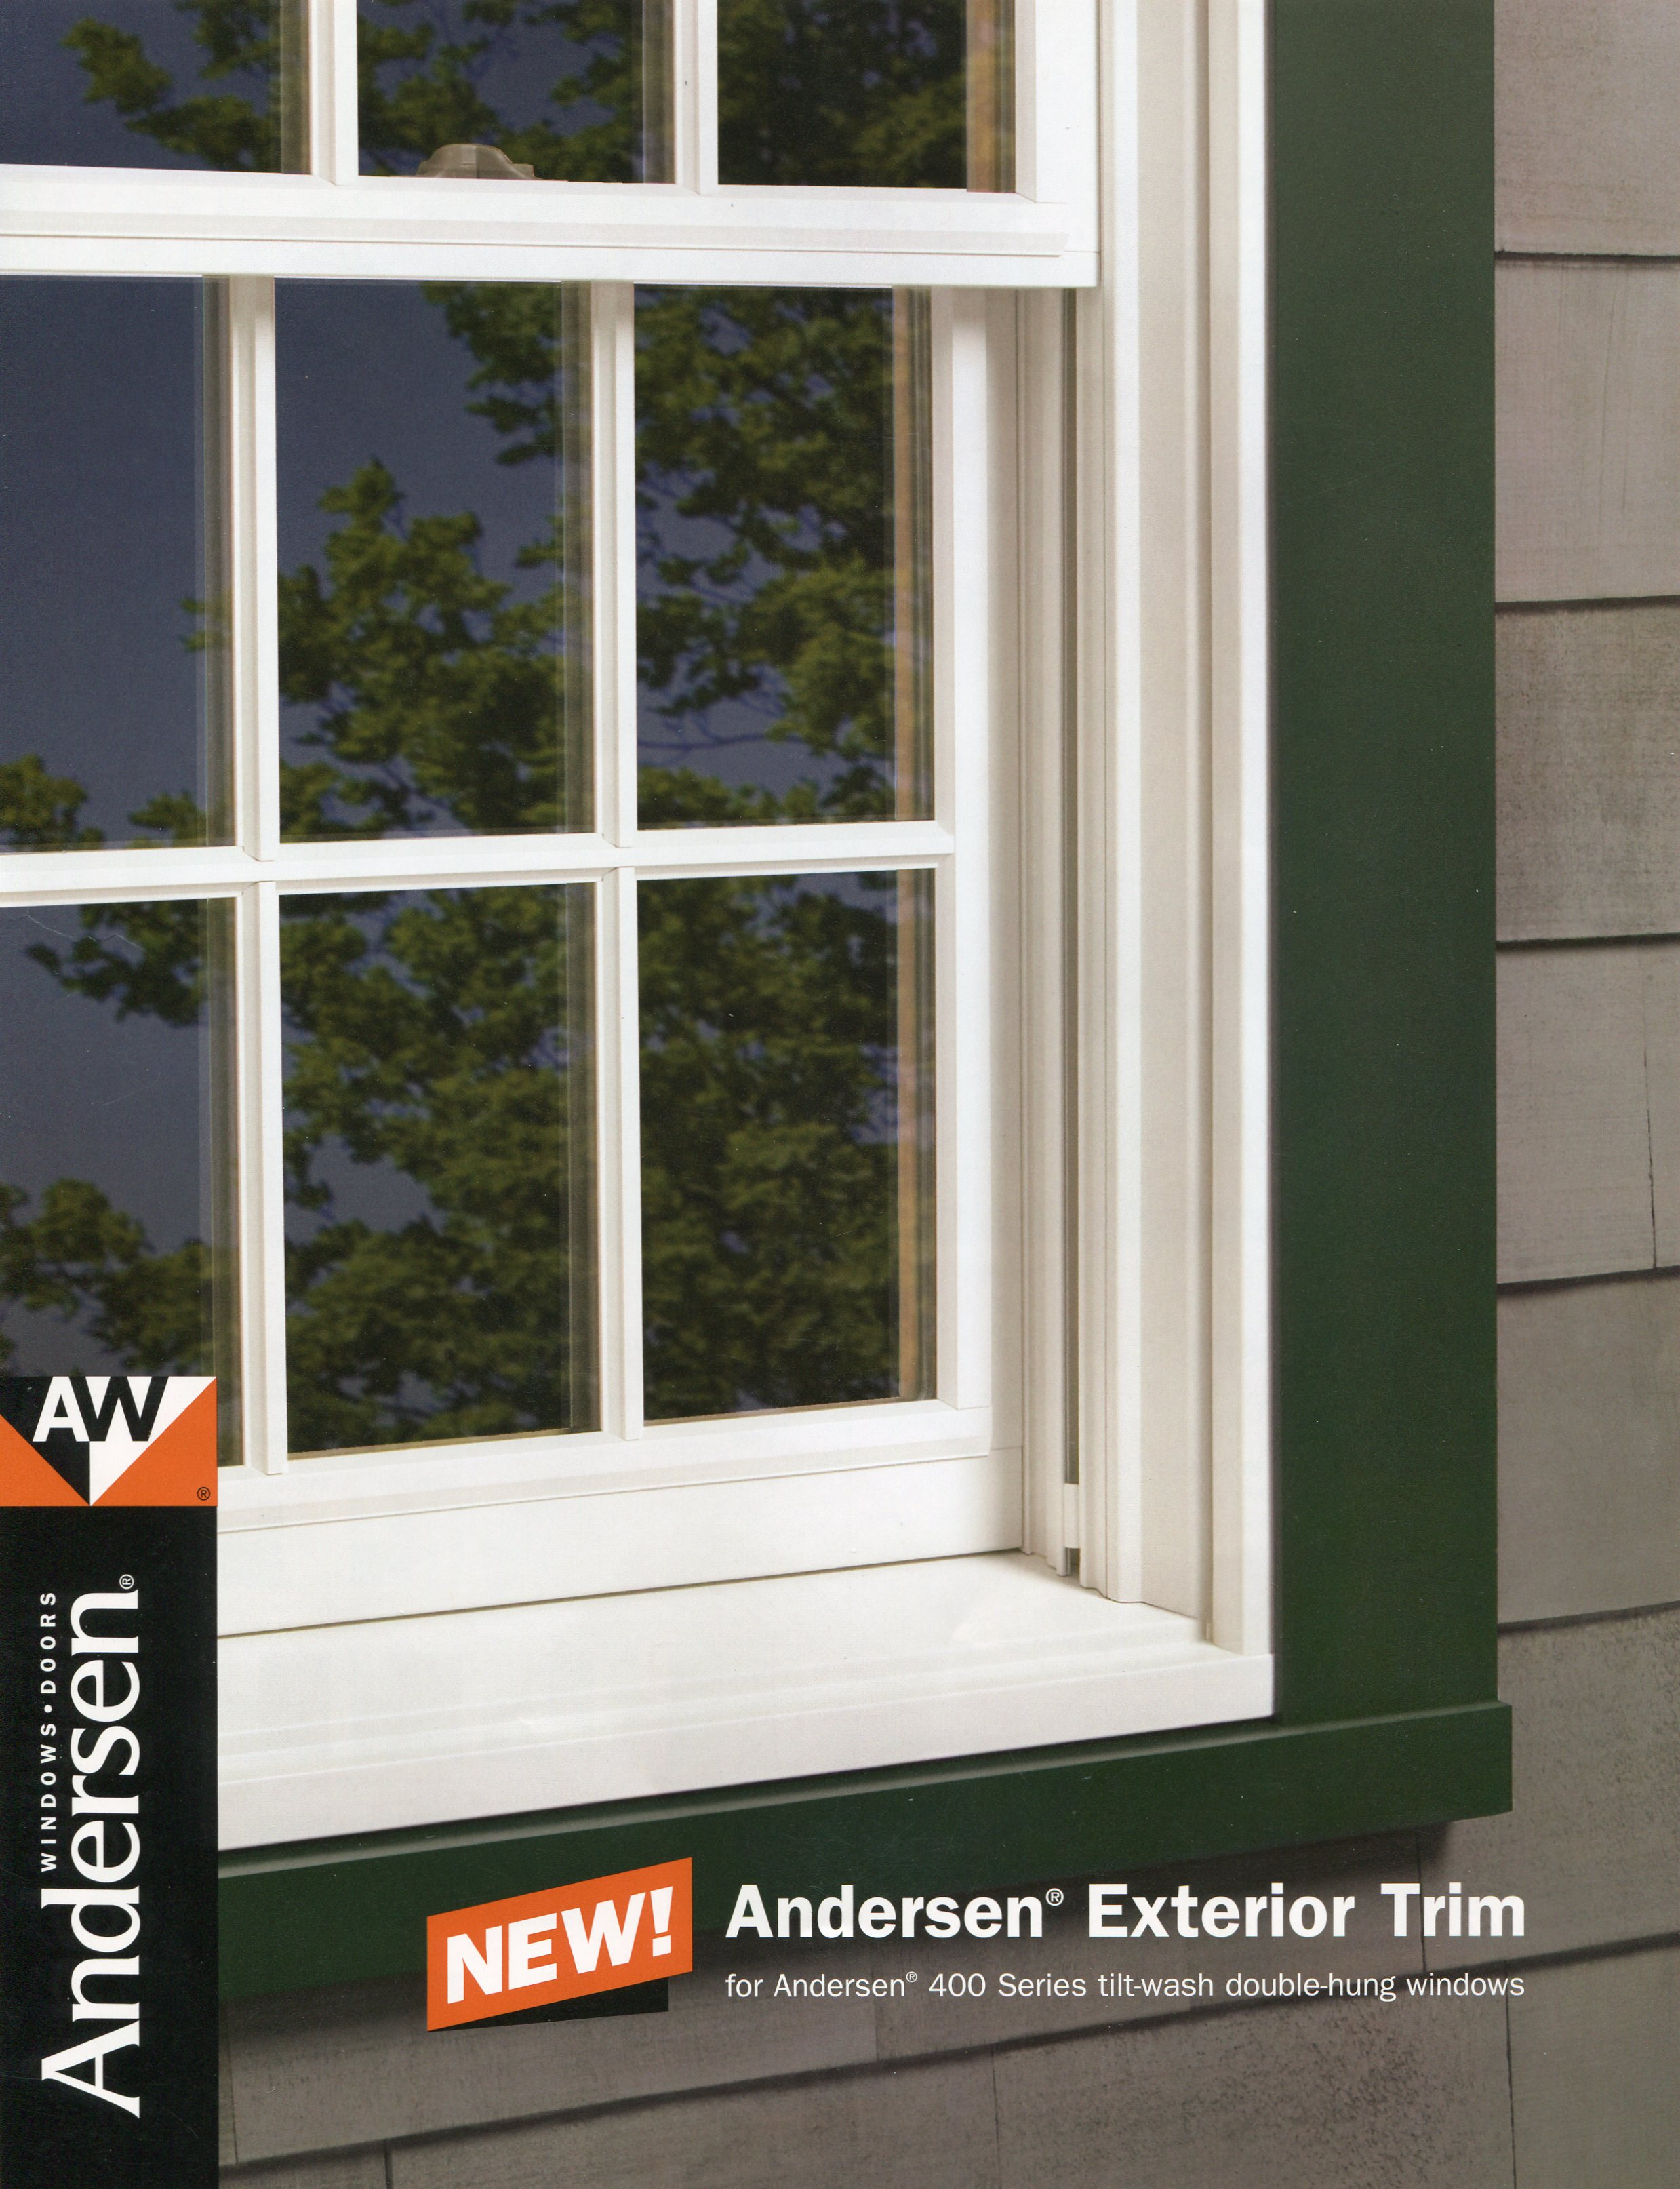 Anderson windows andersen windows - 32284401194923722478 Anderson Replacement Window Exterior Trim B24a19 Anderson Front Door 24783228 Pic With 2478x3228 Px